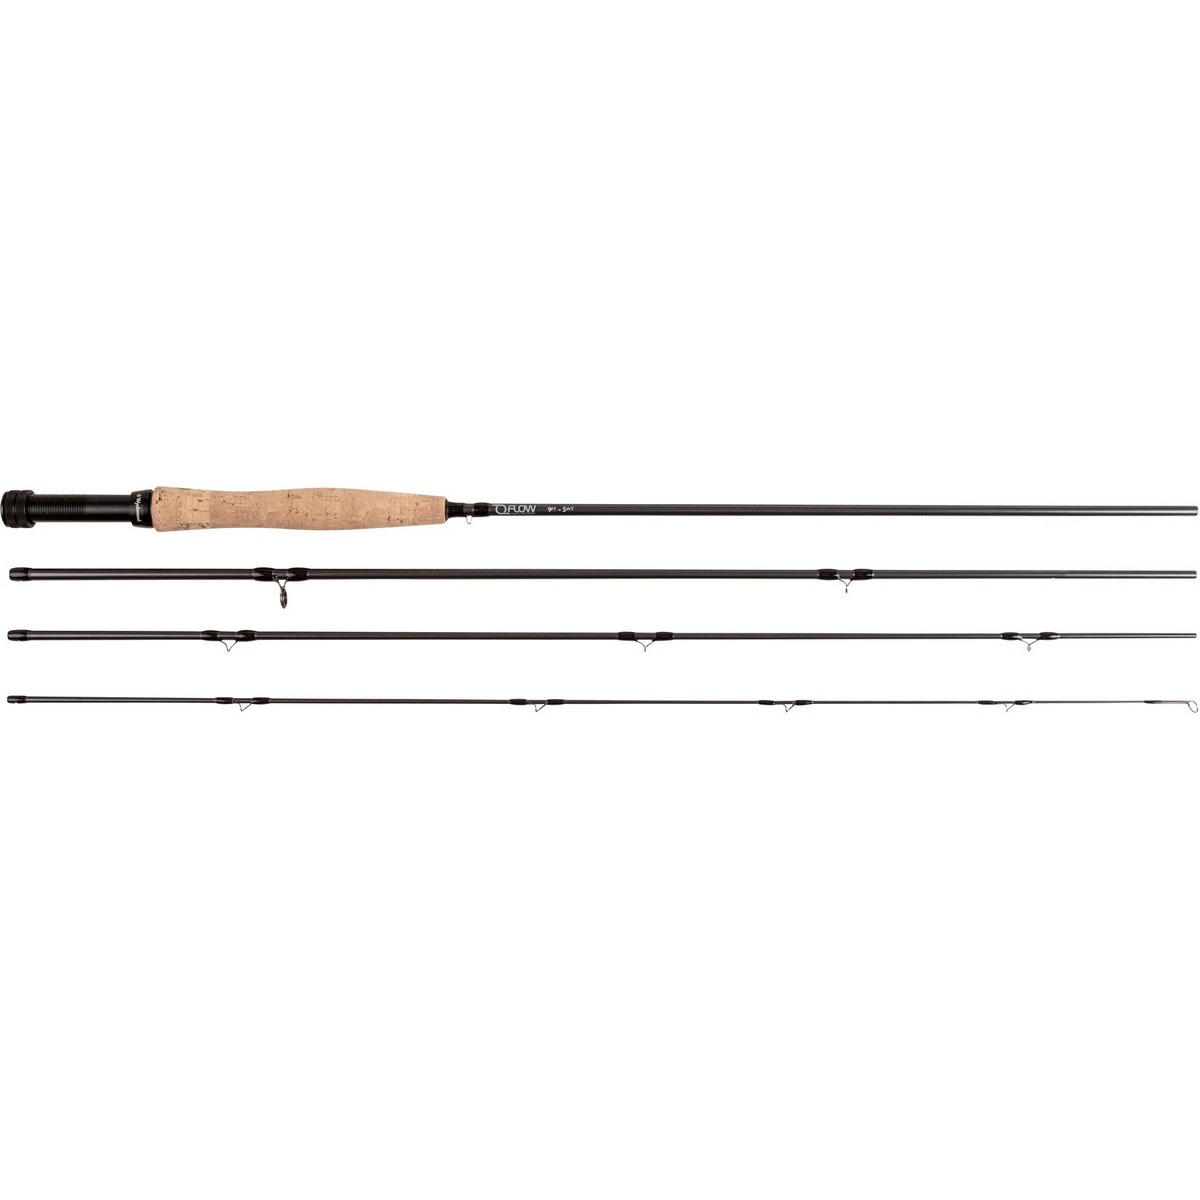 Wychwood Muškařský prut Flow Fly Rod 9,6ft, #7